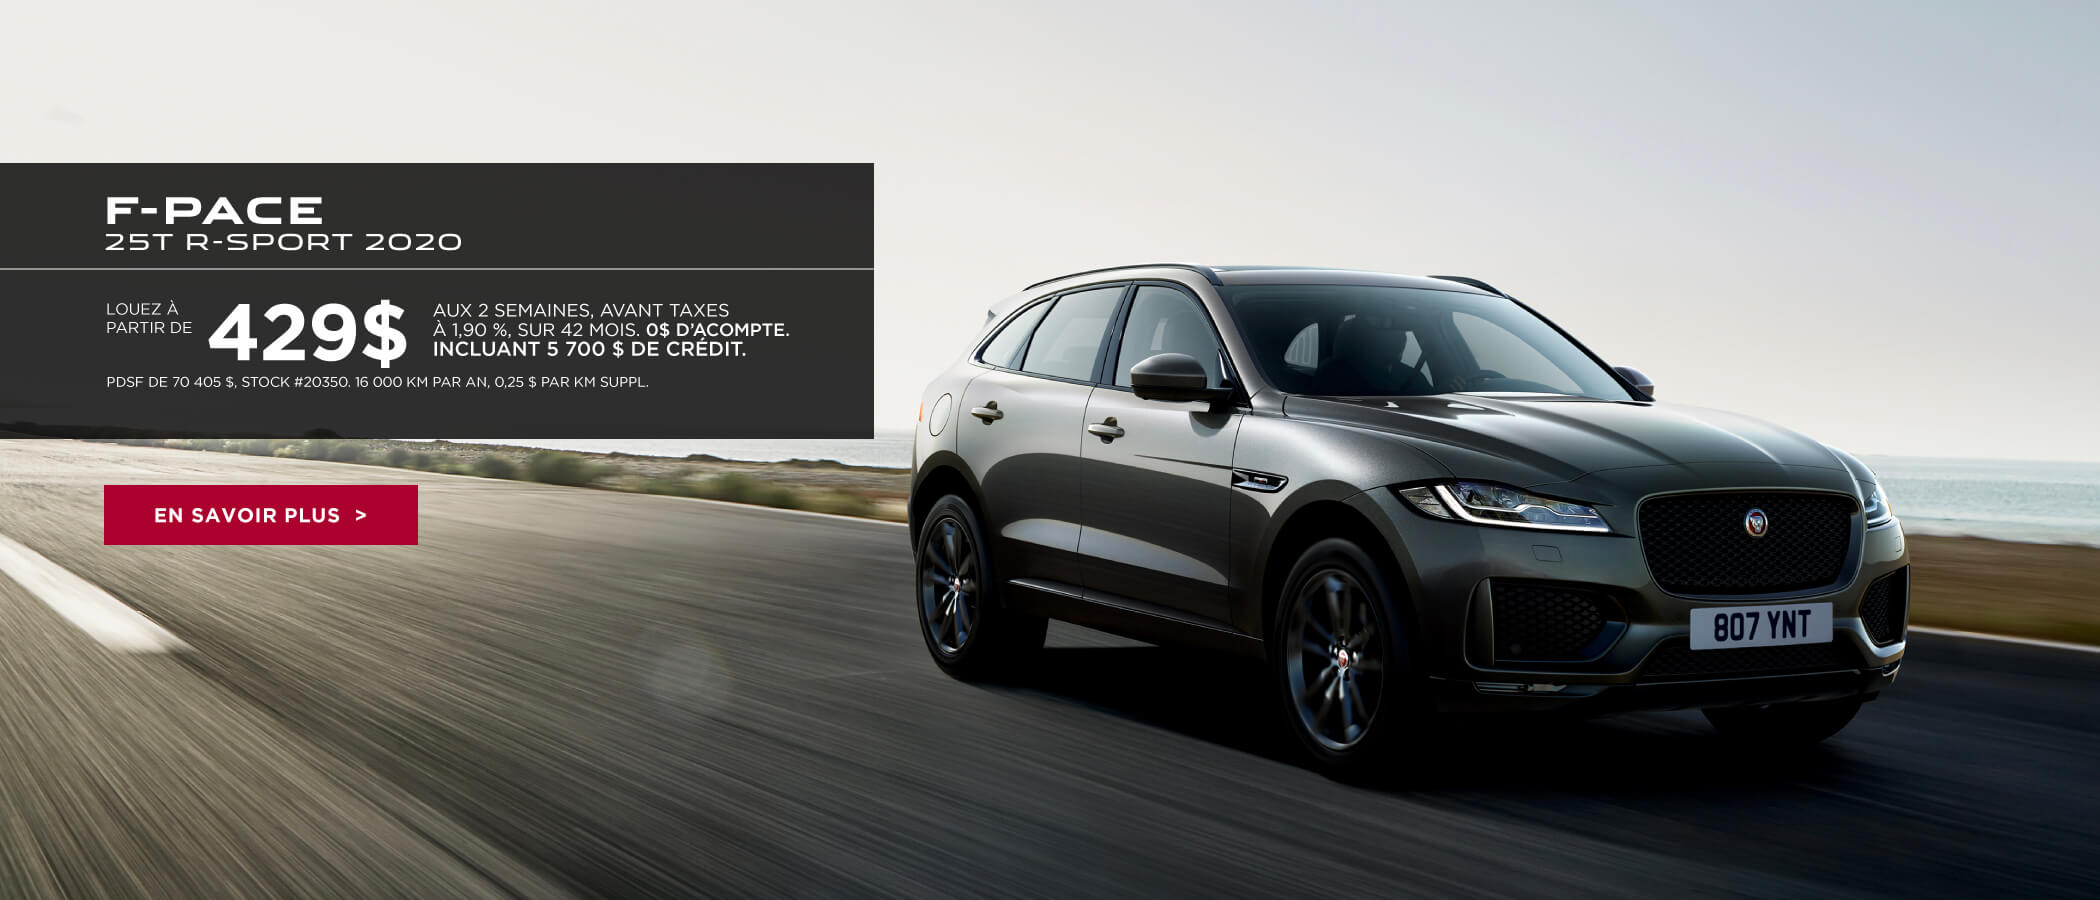 Oct Fpace Rsport Slider 2100x900